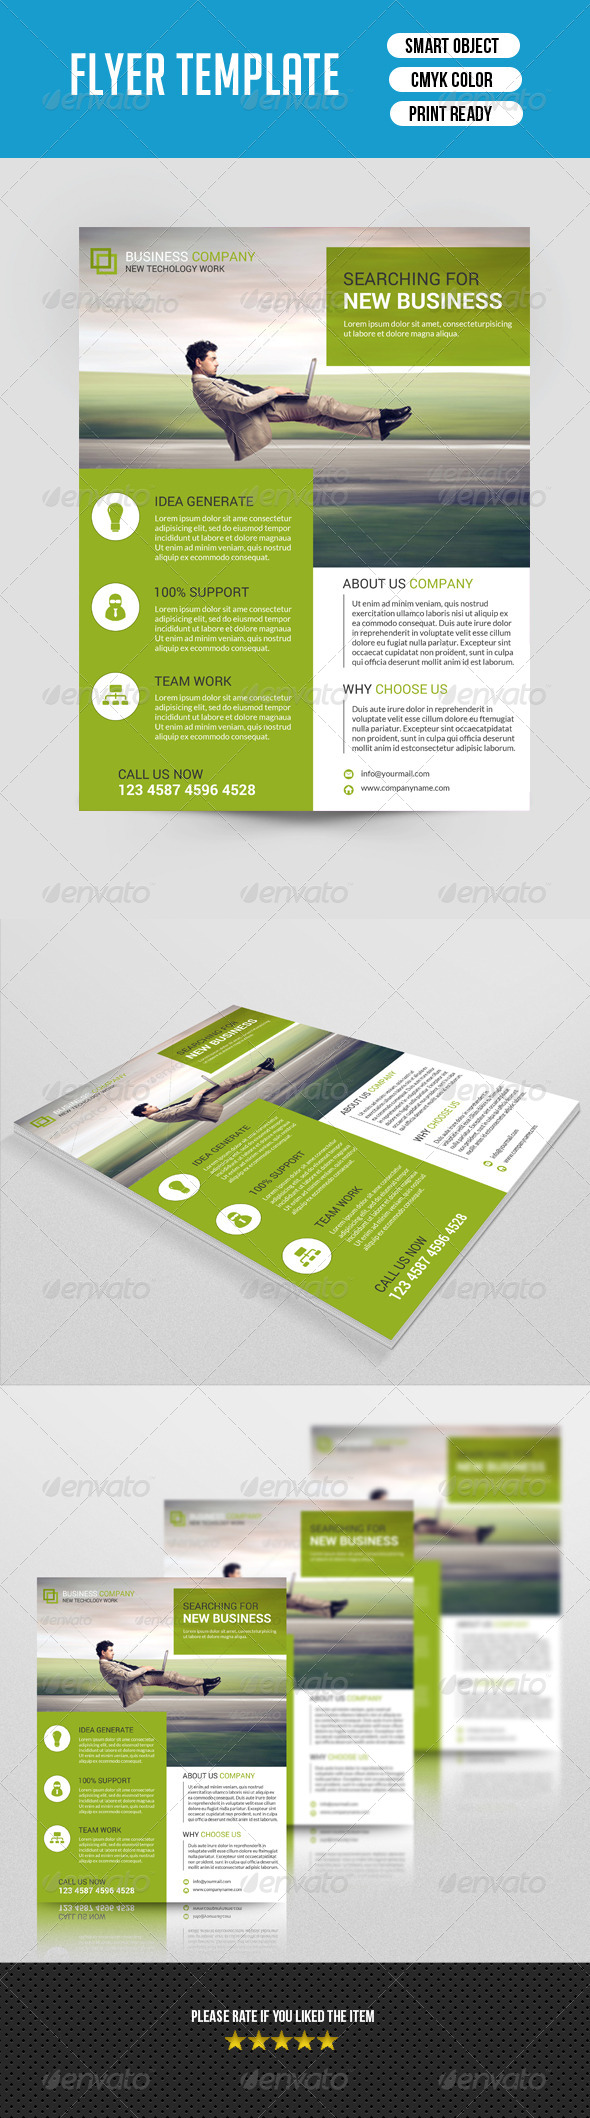 Business Flyer Template-V50 - Corporate Flyers